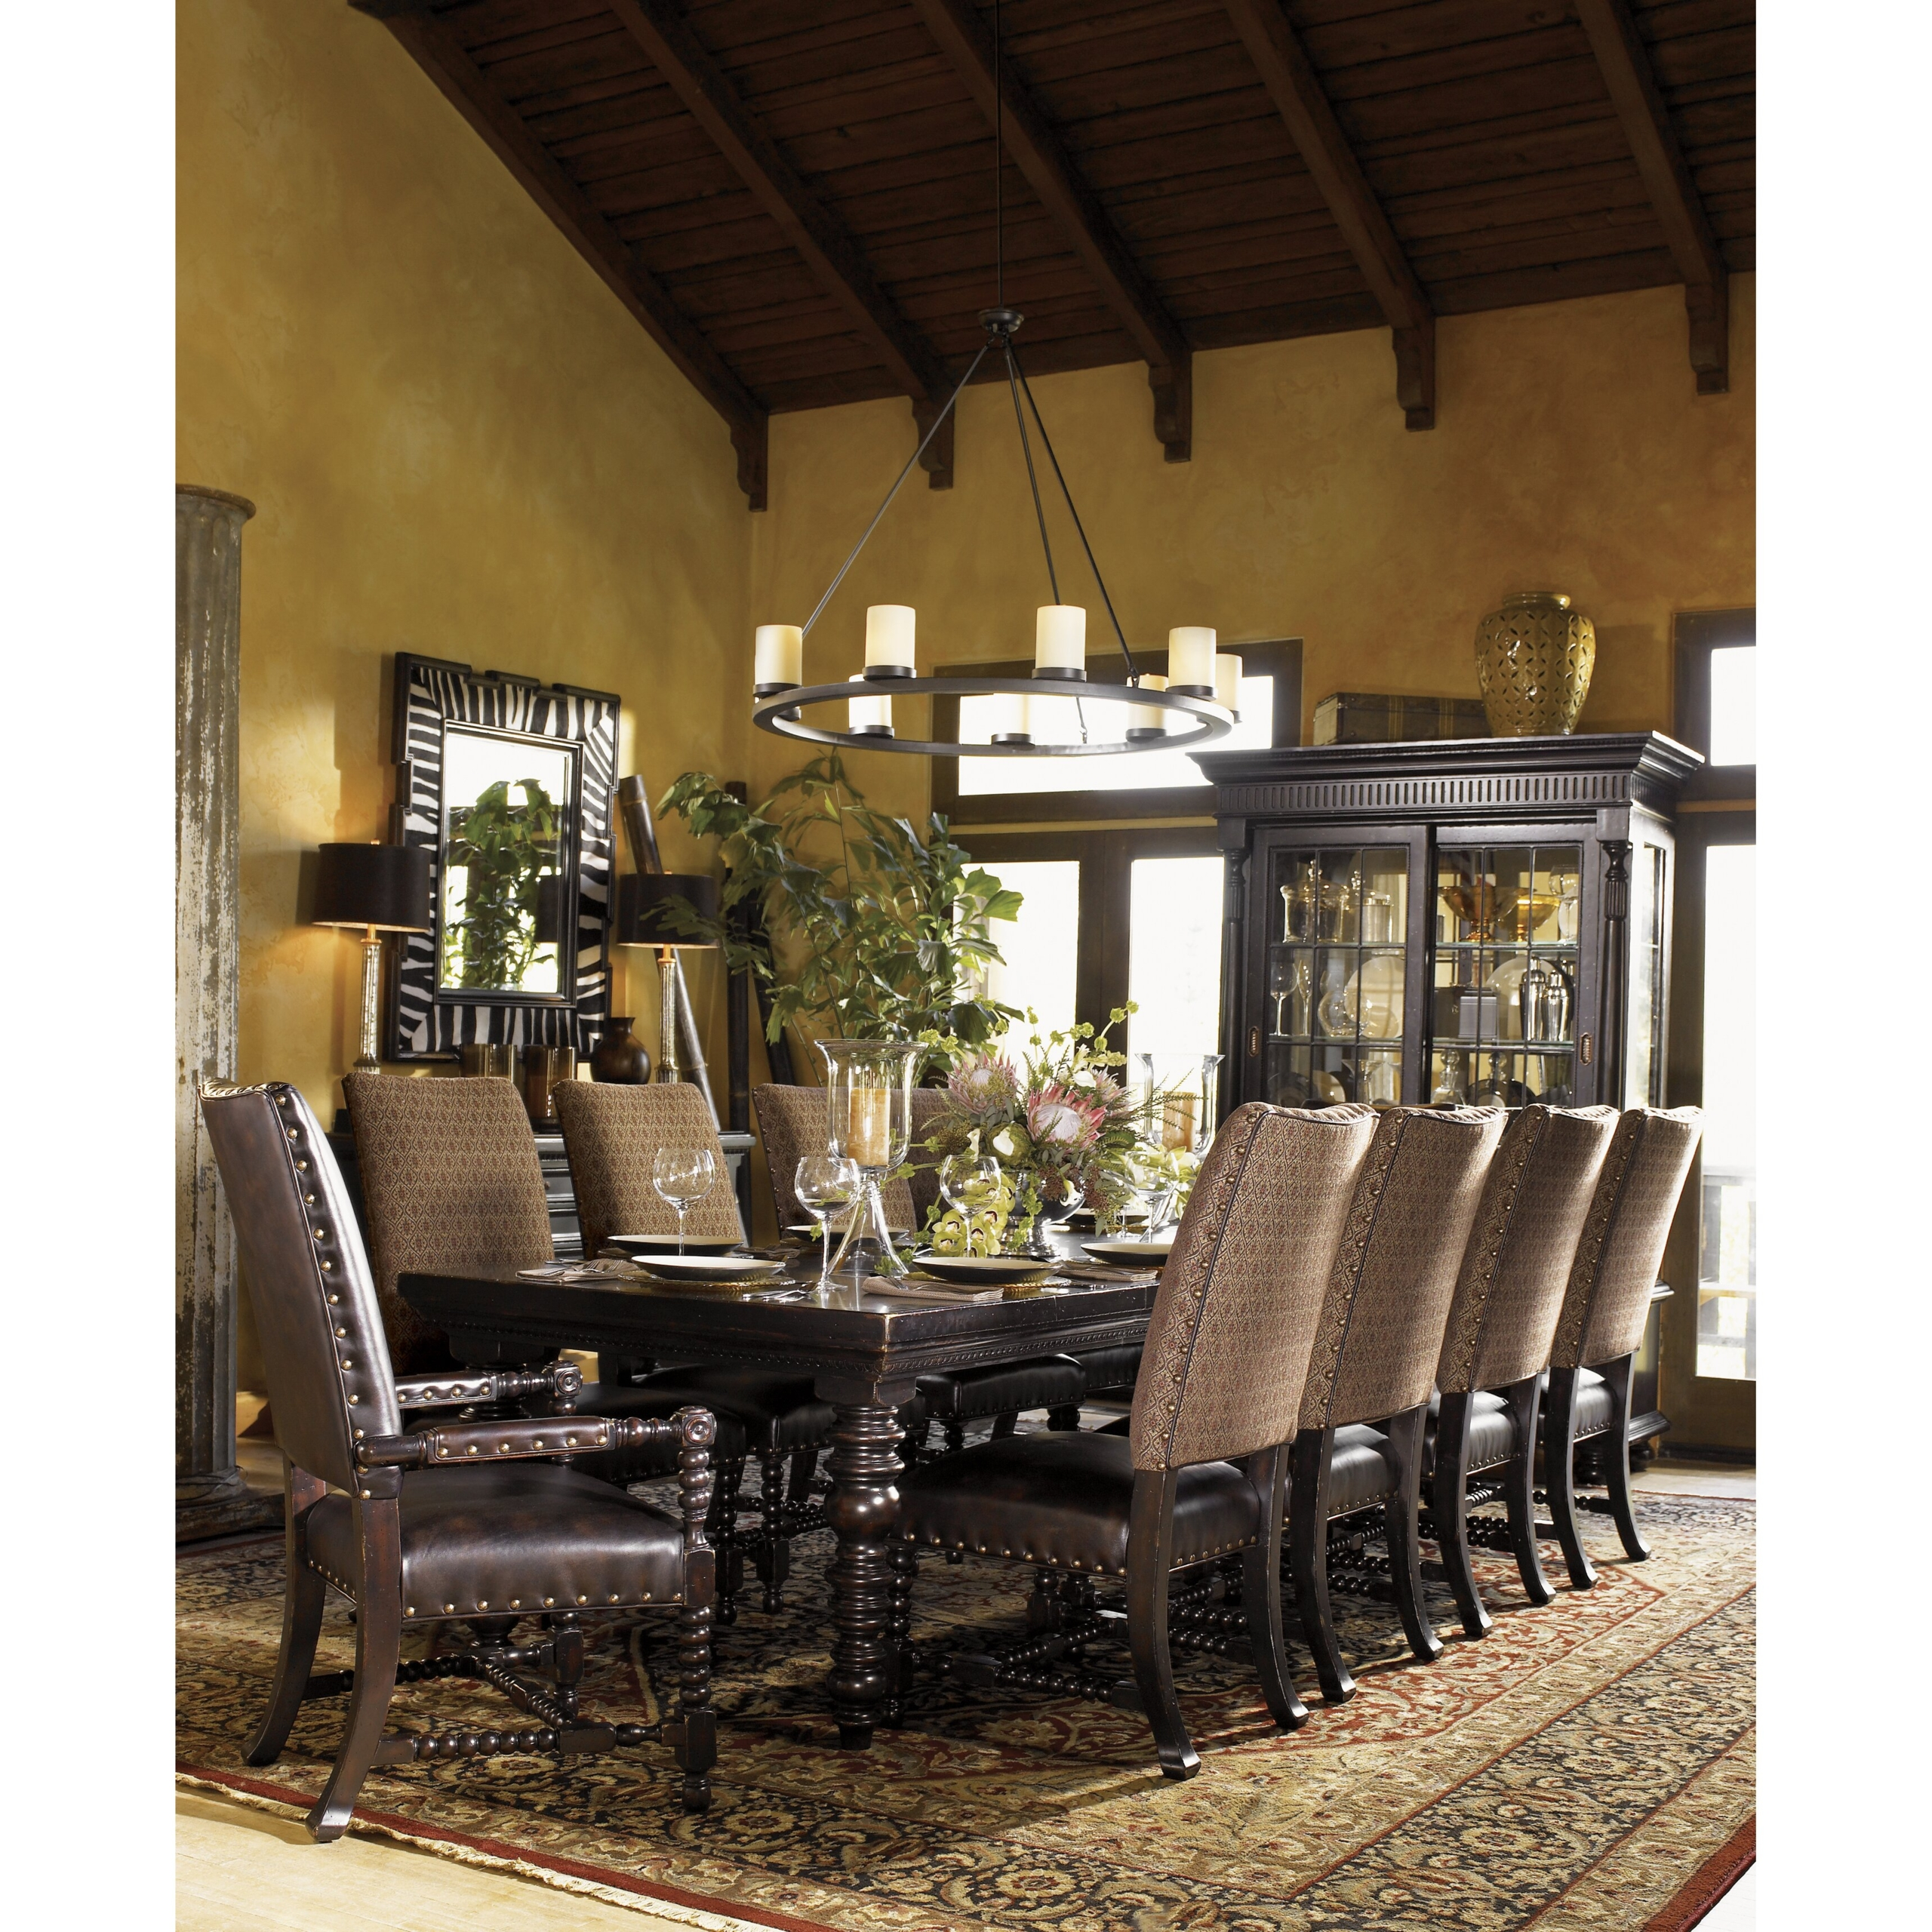 tommy bahama living room pics of rooms with grey walls decorating ideas visual hunt extendable table